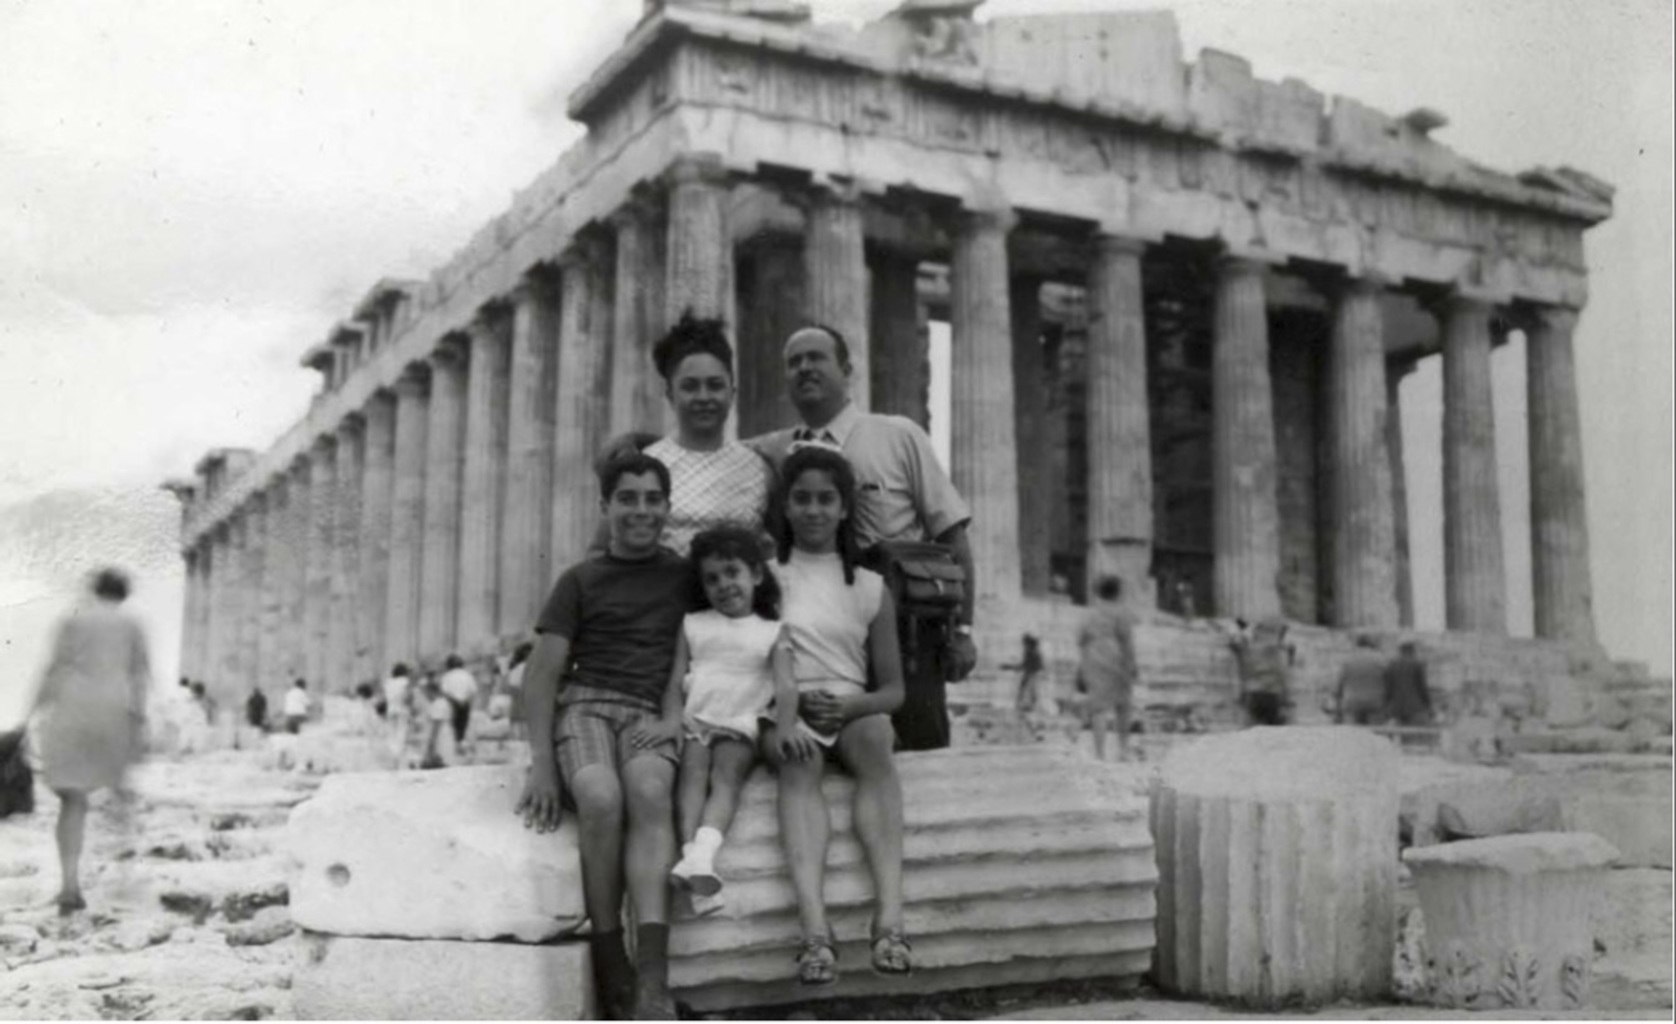 Sambunaris as a child visiting the Parthenon with her family